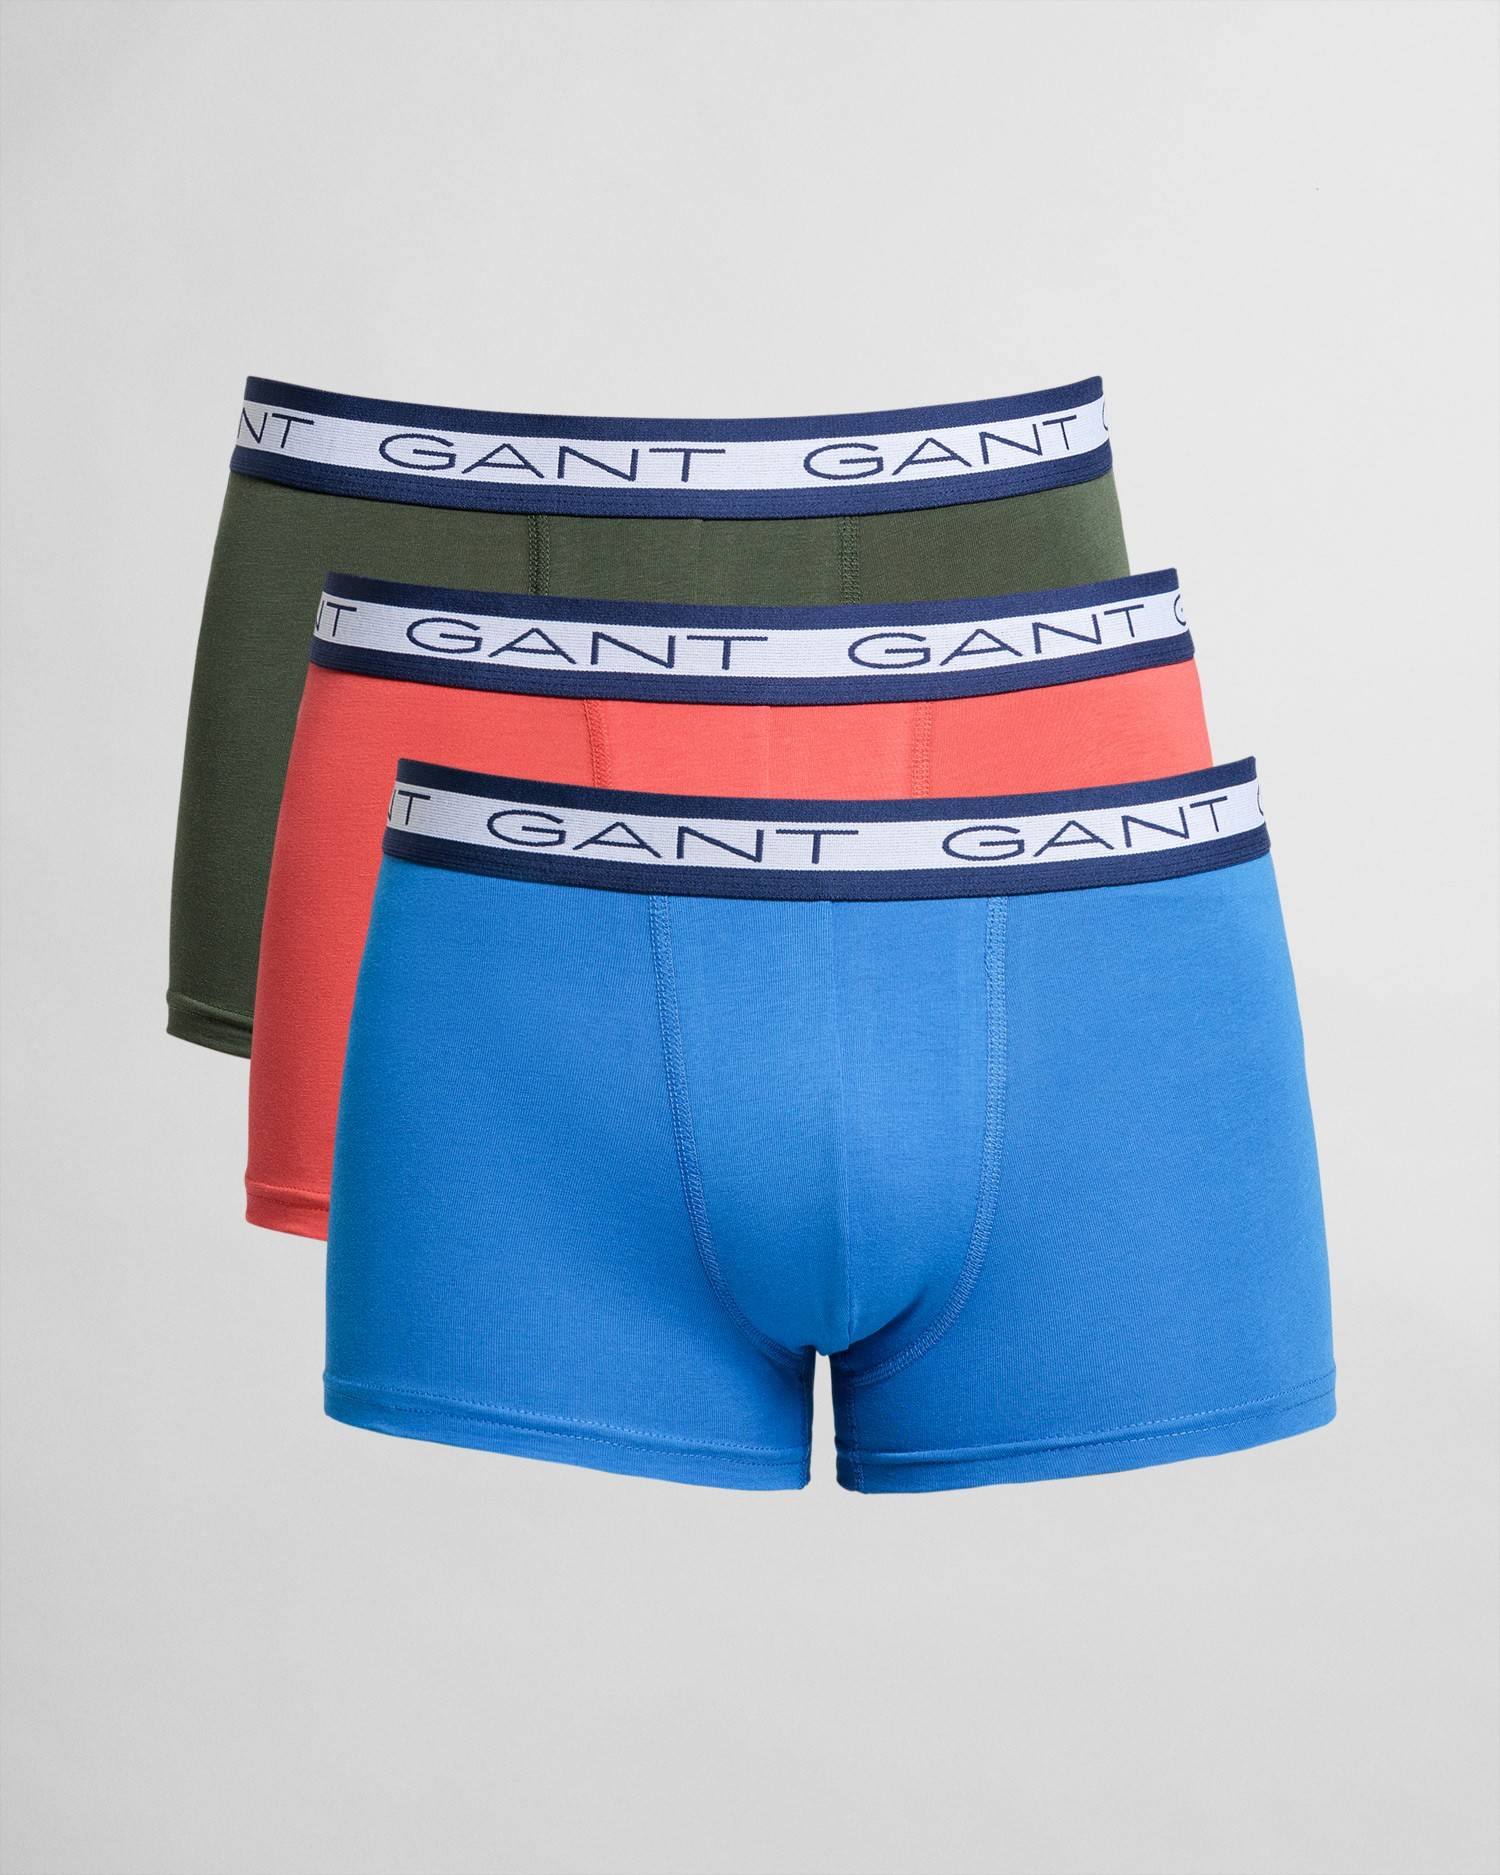 GANT Men's 3-Pack Boxer - 902033153